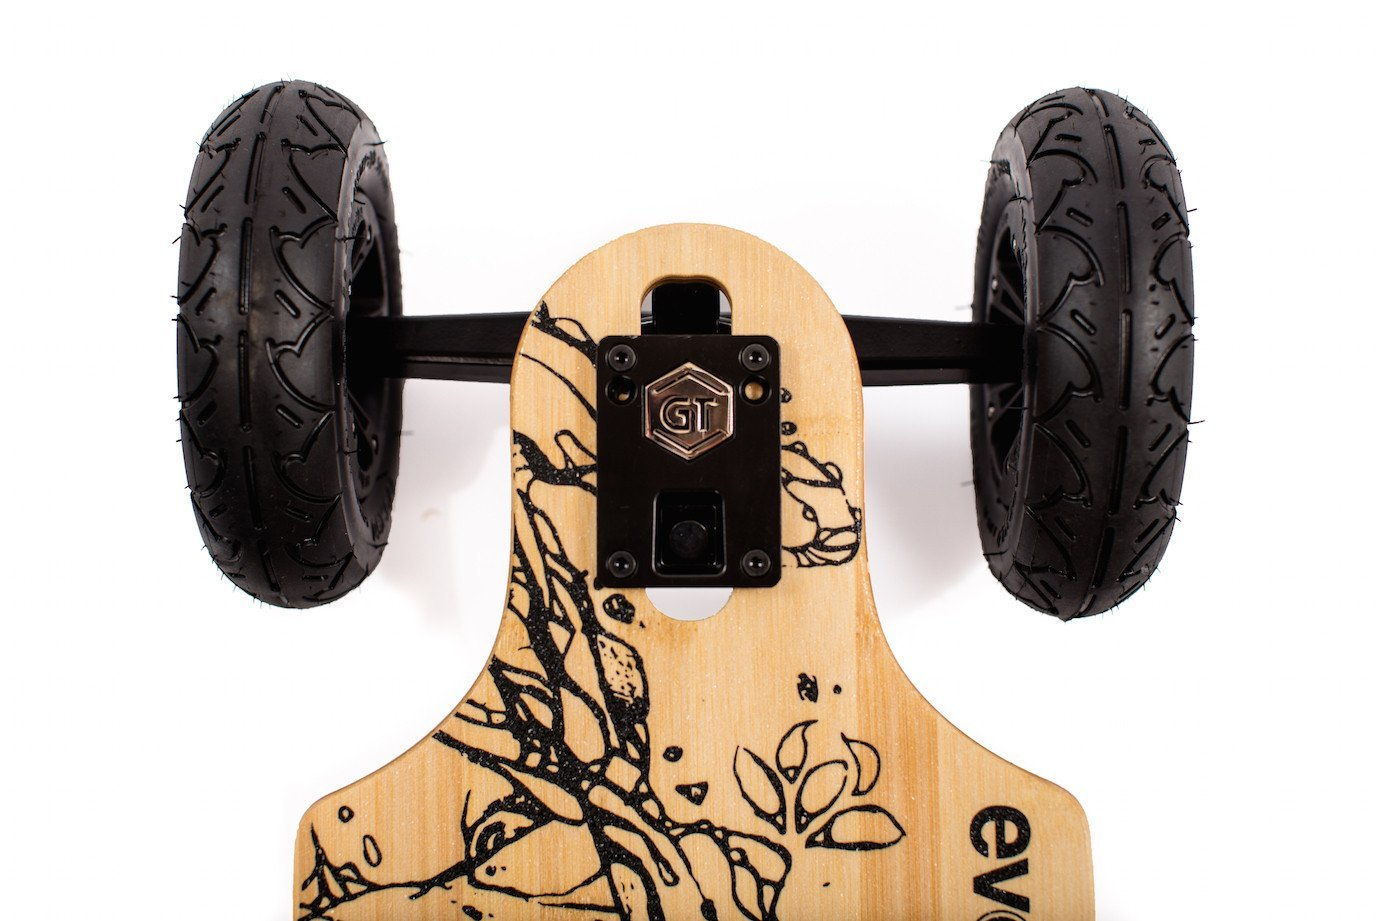 Bamboo GT Series 2 in 1